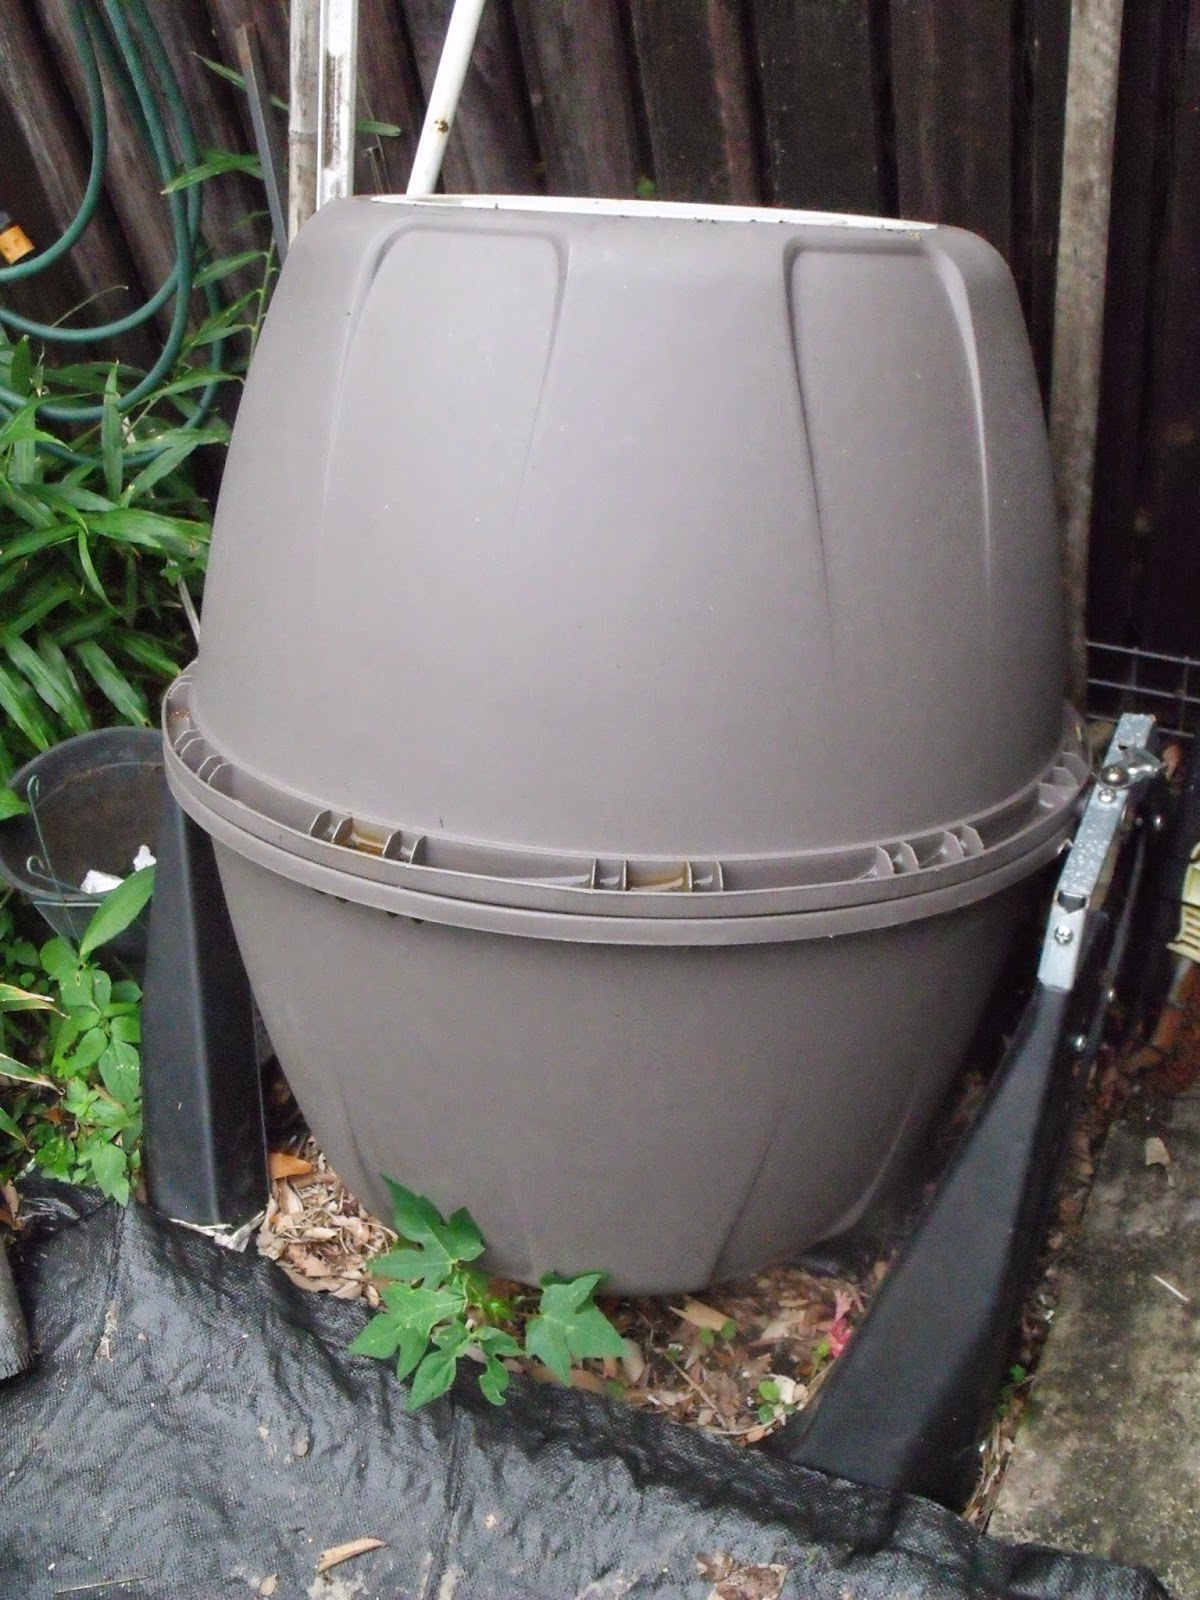 This Weekened When I Was Transferring Compost From The Tumbler Into Bin Noticed Something Have Never Seen Before Red Wrigglers They Must